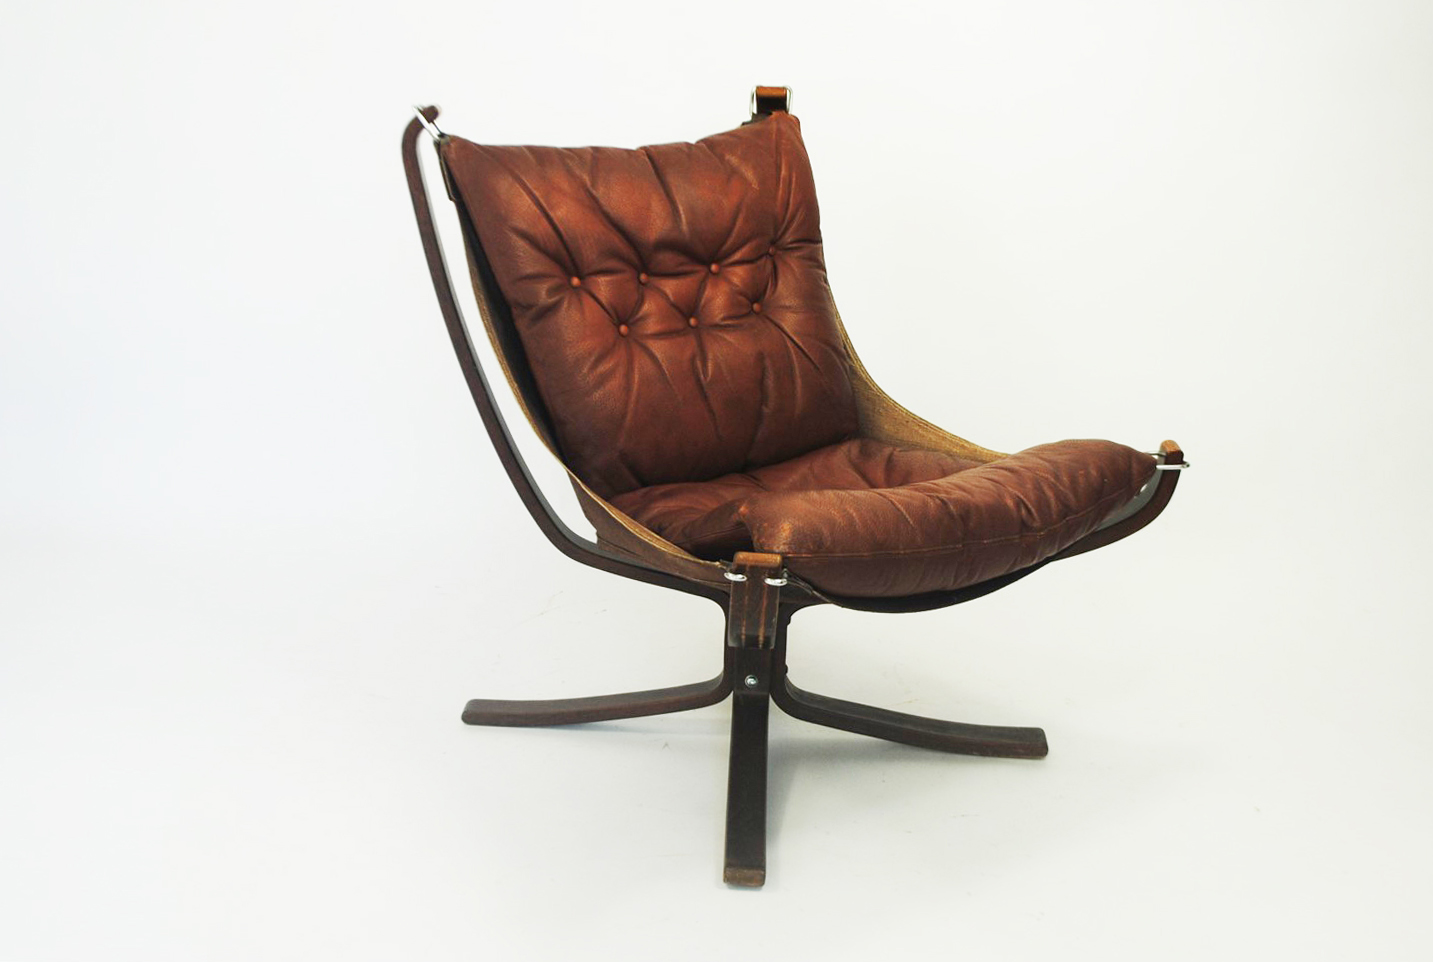 Falcon Chair Ressell Falcon Chair Palissander Palissander